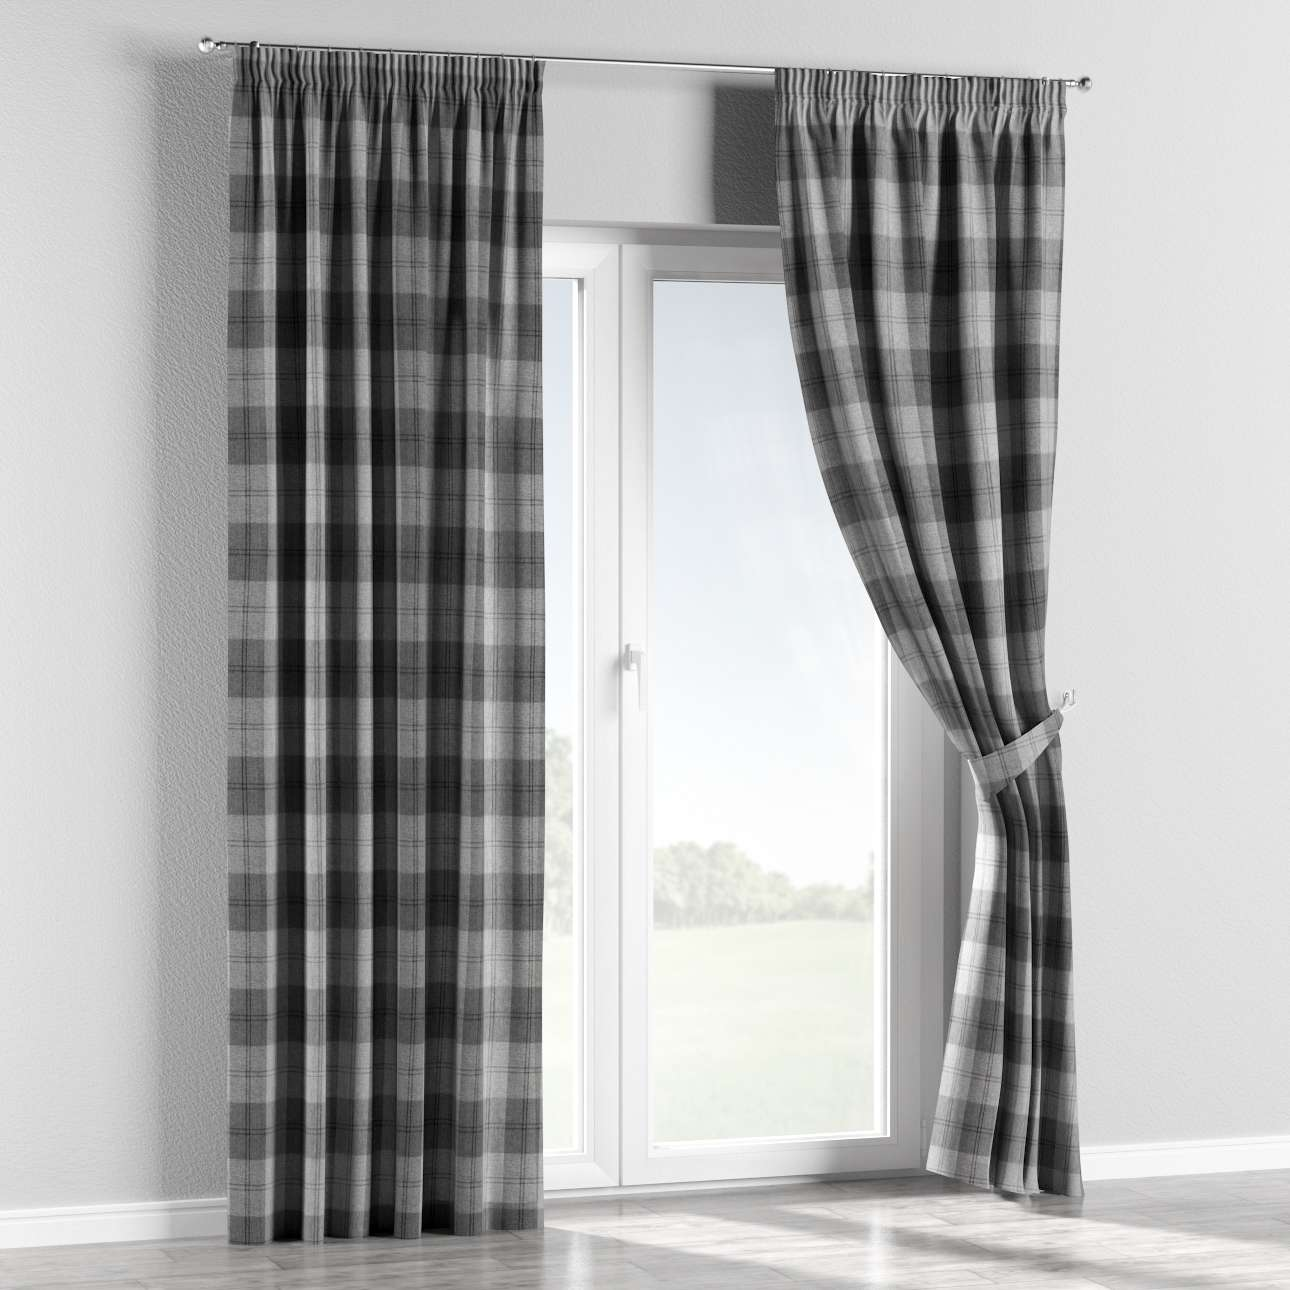 Pencil pleat curtains 130 x 260 cm (51 x 102 inch) in collection Edinburgh, fabric: 115-75